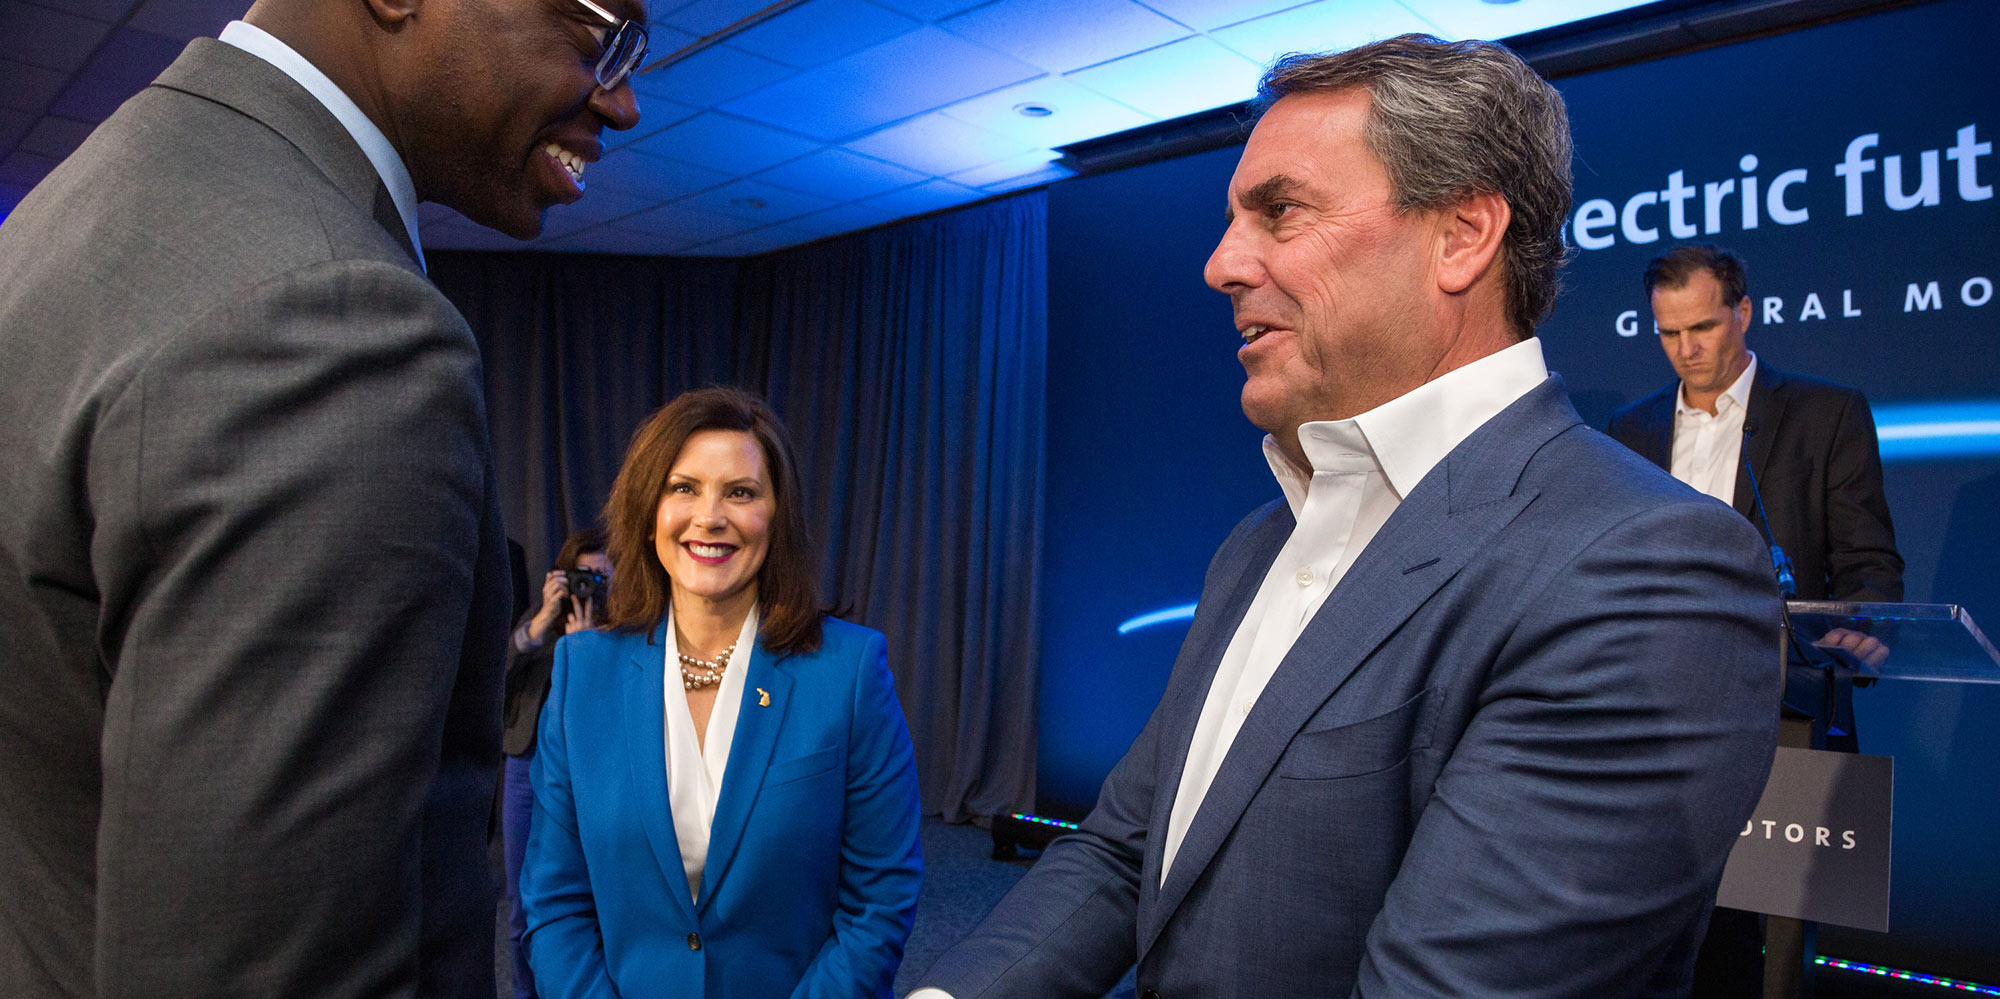 GM President Mark Reuss greets Michigan Lt. Governor Garlin Gilchrist and Michigan Governor Gretchen Whitmer at the GM Detroit- Hamtramck plant.